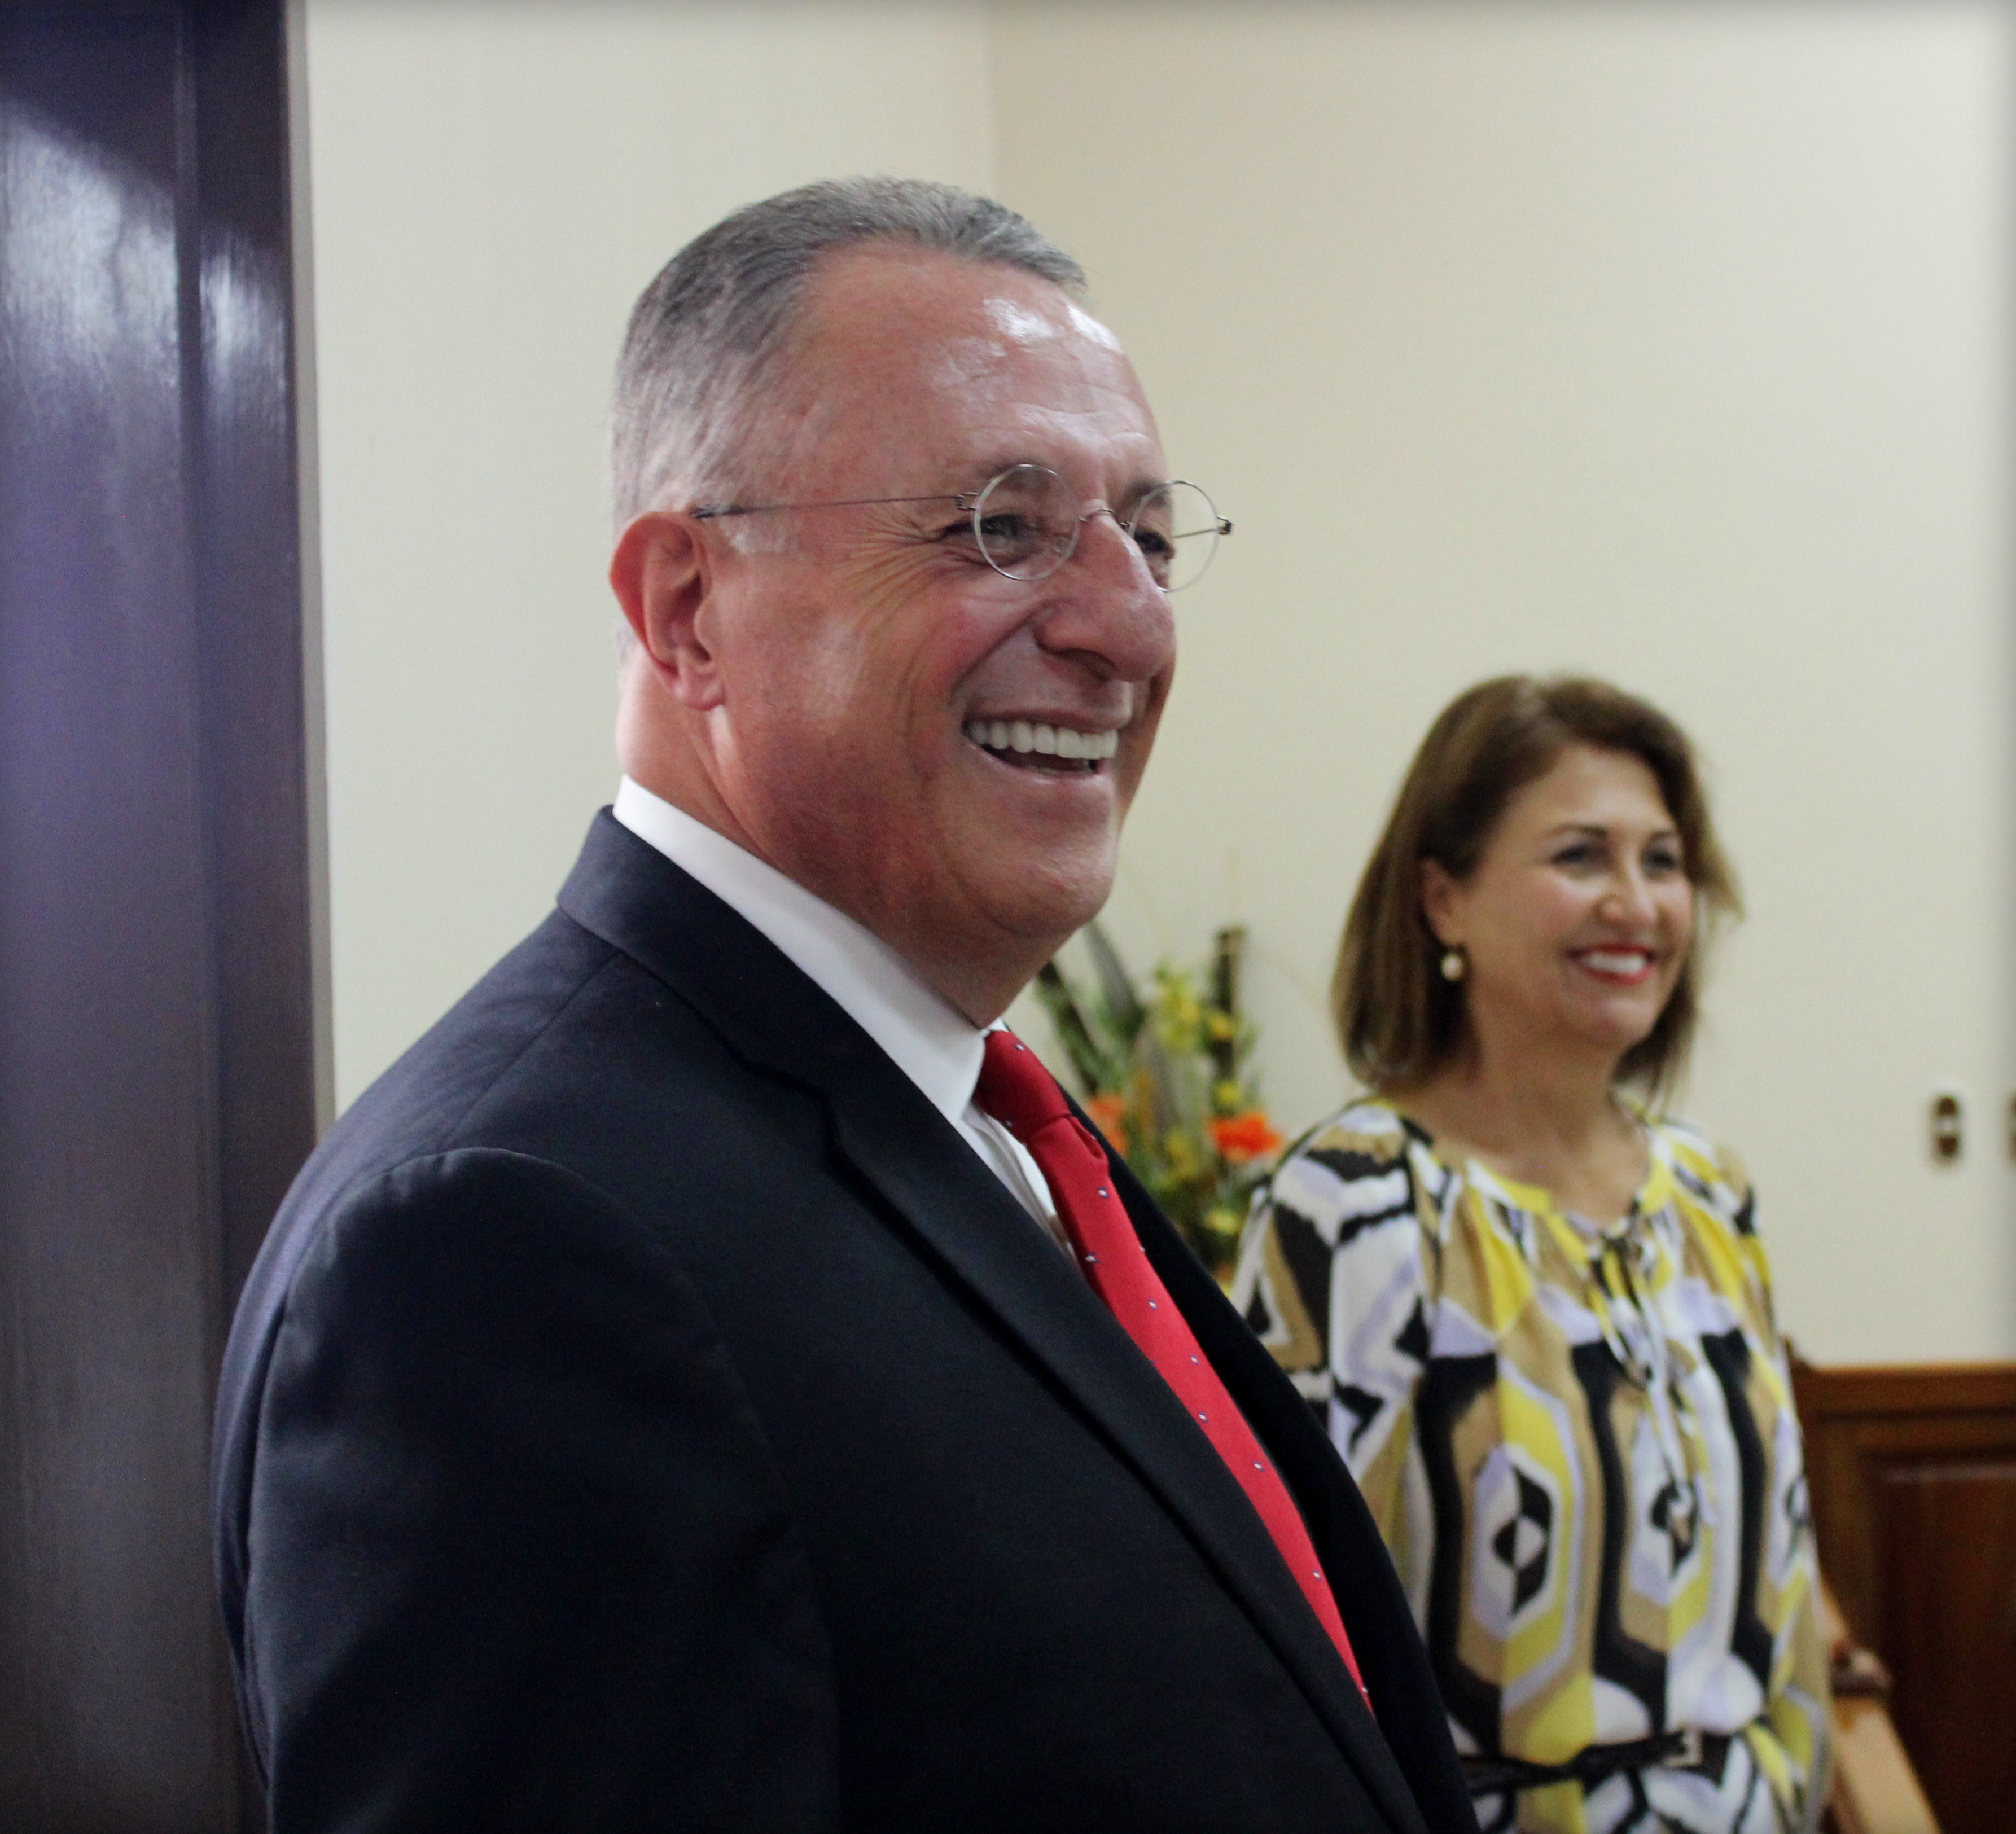 Elder Ulisses Soares of the Quorum of the Twelve Apostles greets missionaries in Costa Rica on Nov. 8, 2018.